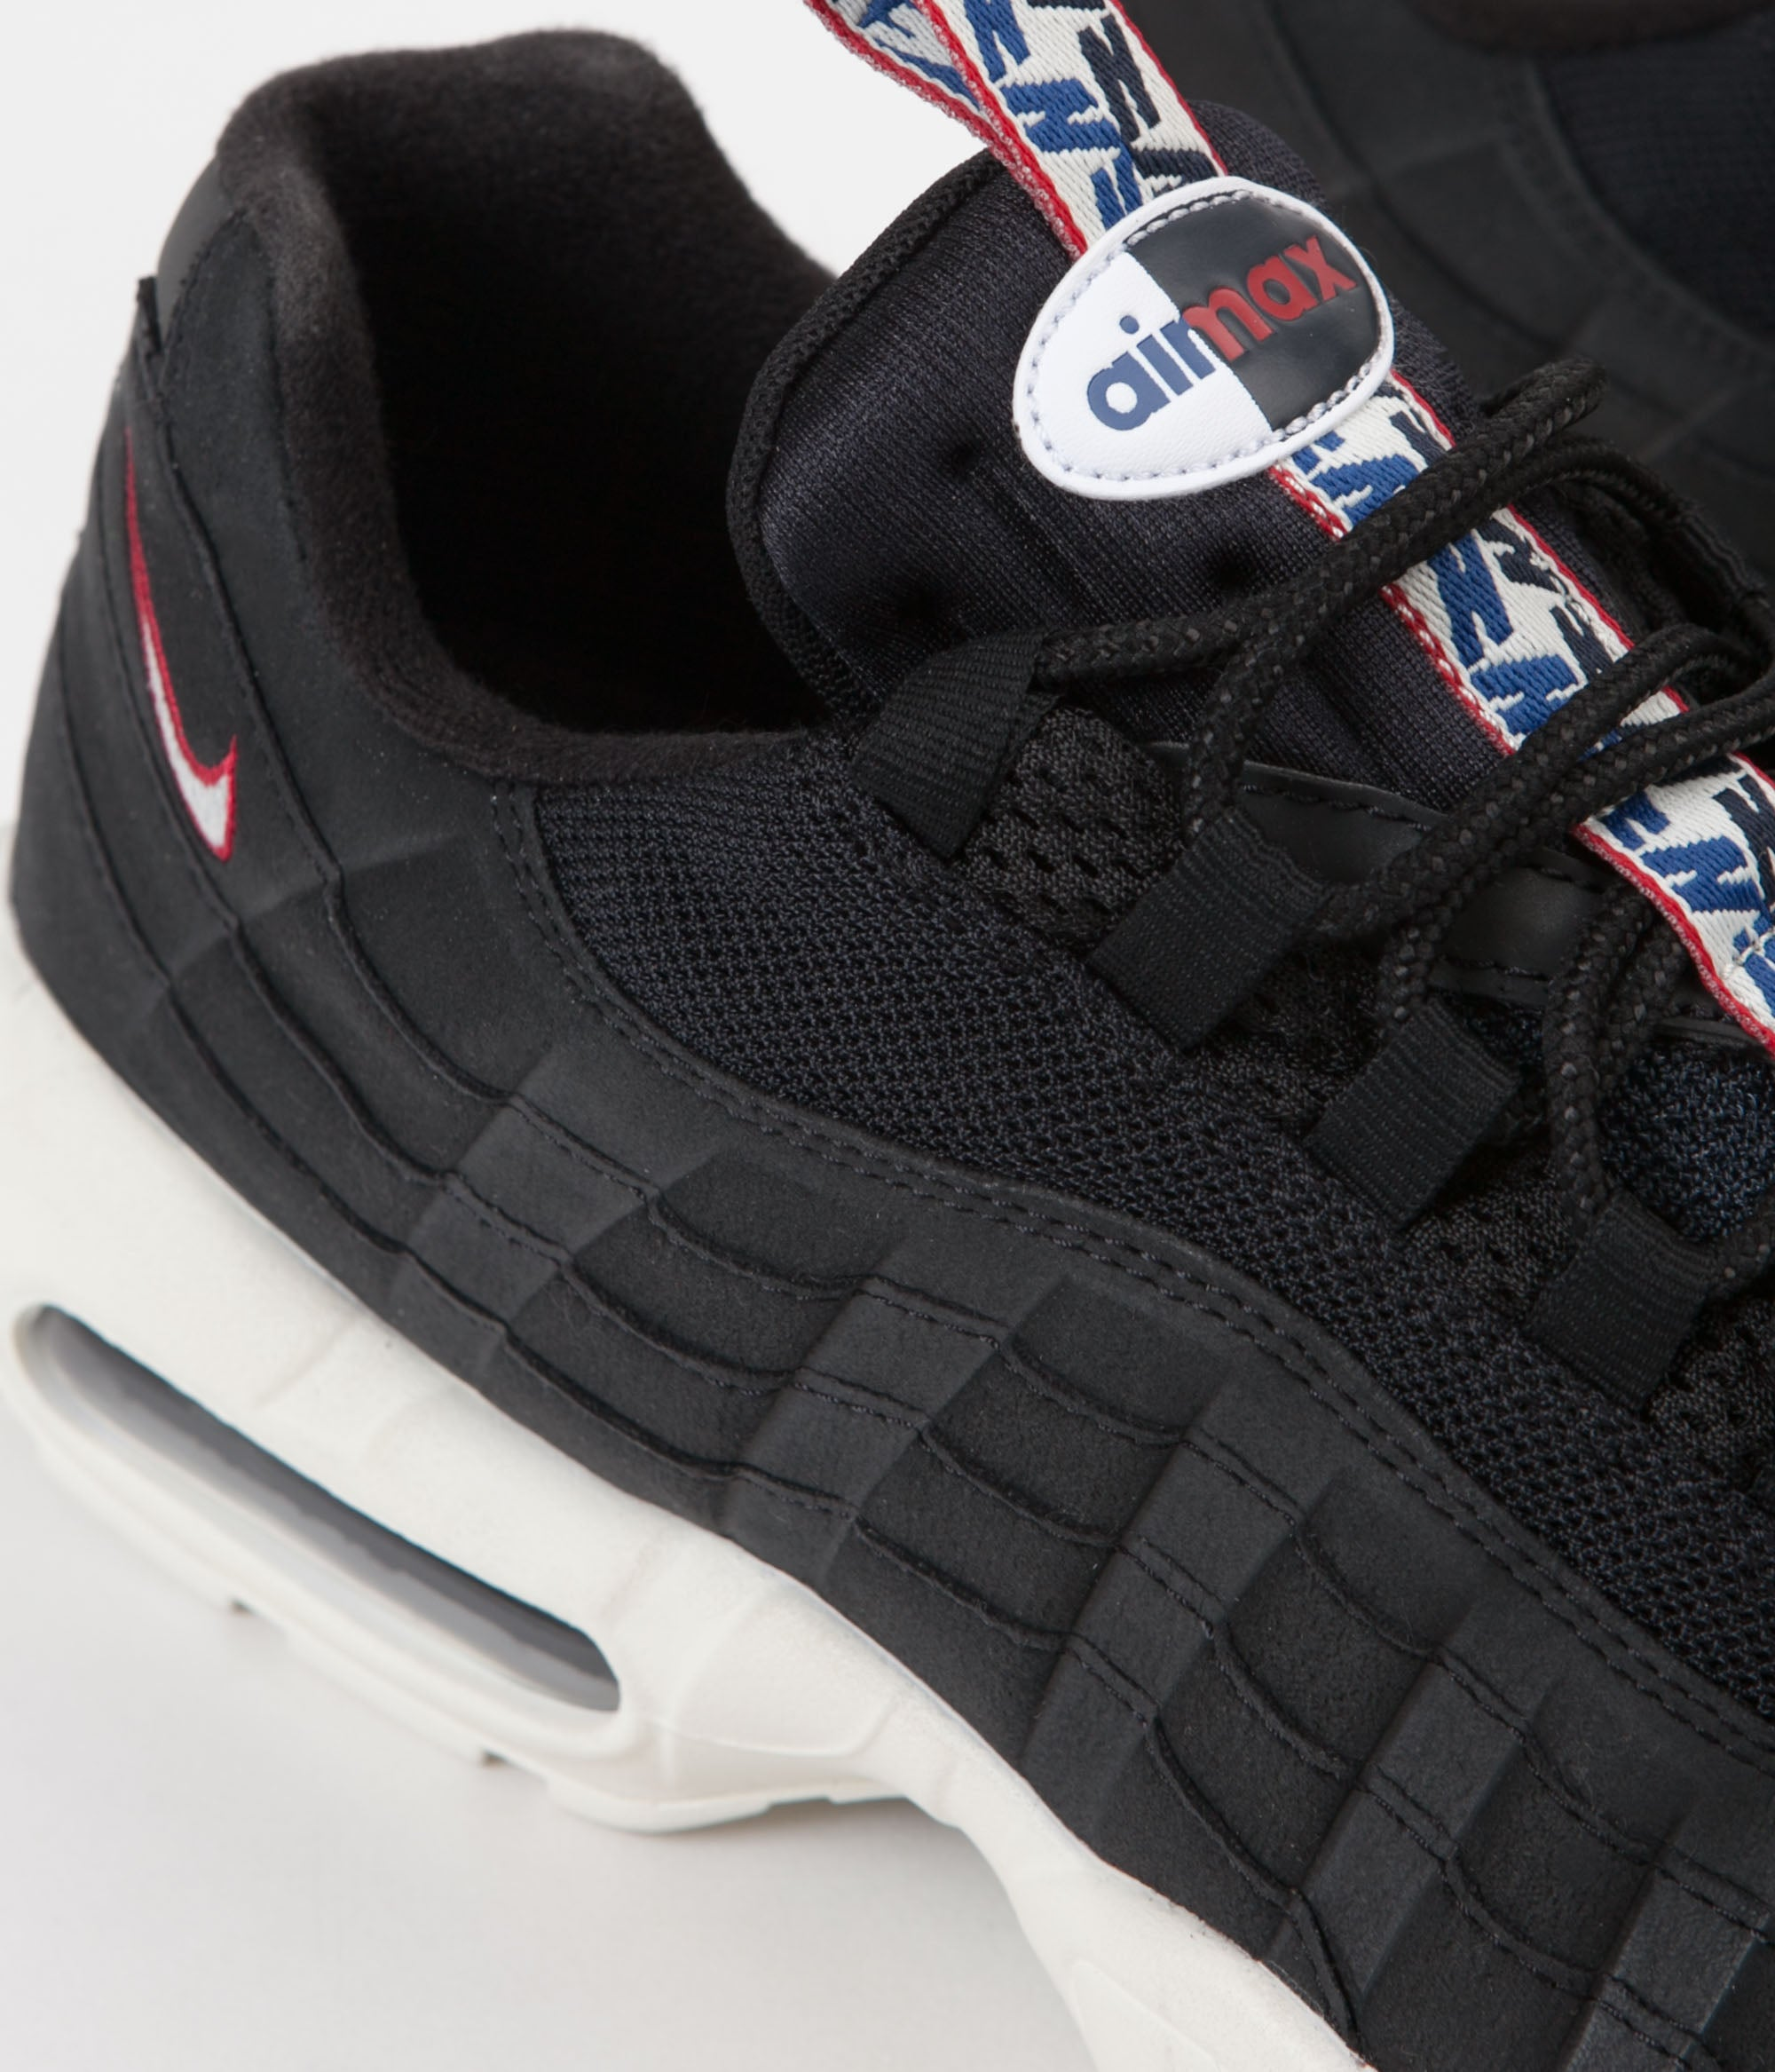 outlet store b9e10 36ac0 Nike Air Max 95 TT Shoes - Black / Sail - Gym Red | Always ...